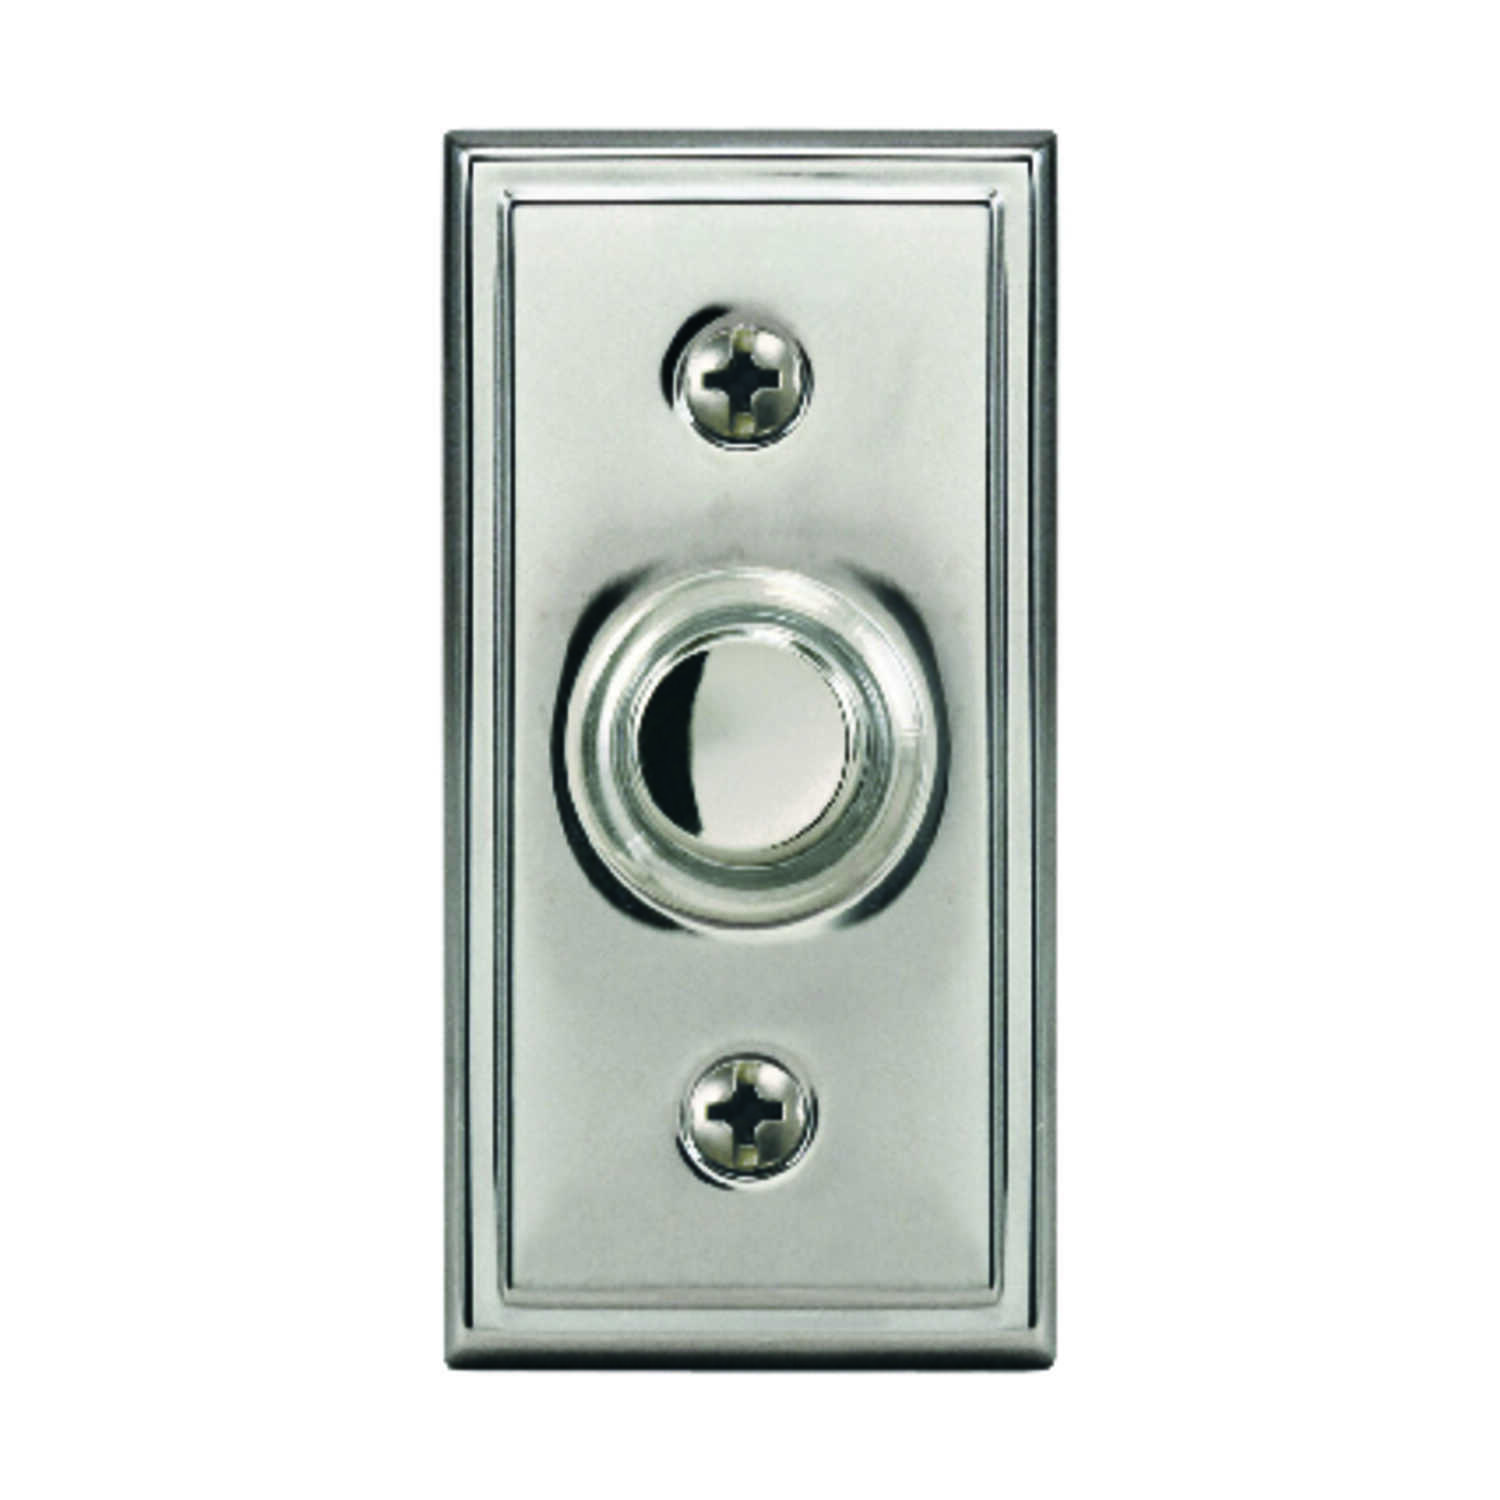 Heath Zenith  Satin Nickel  Pushbutton Doorbell  Wired